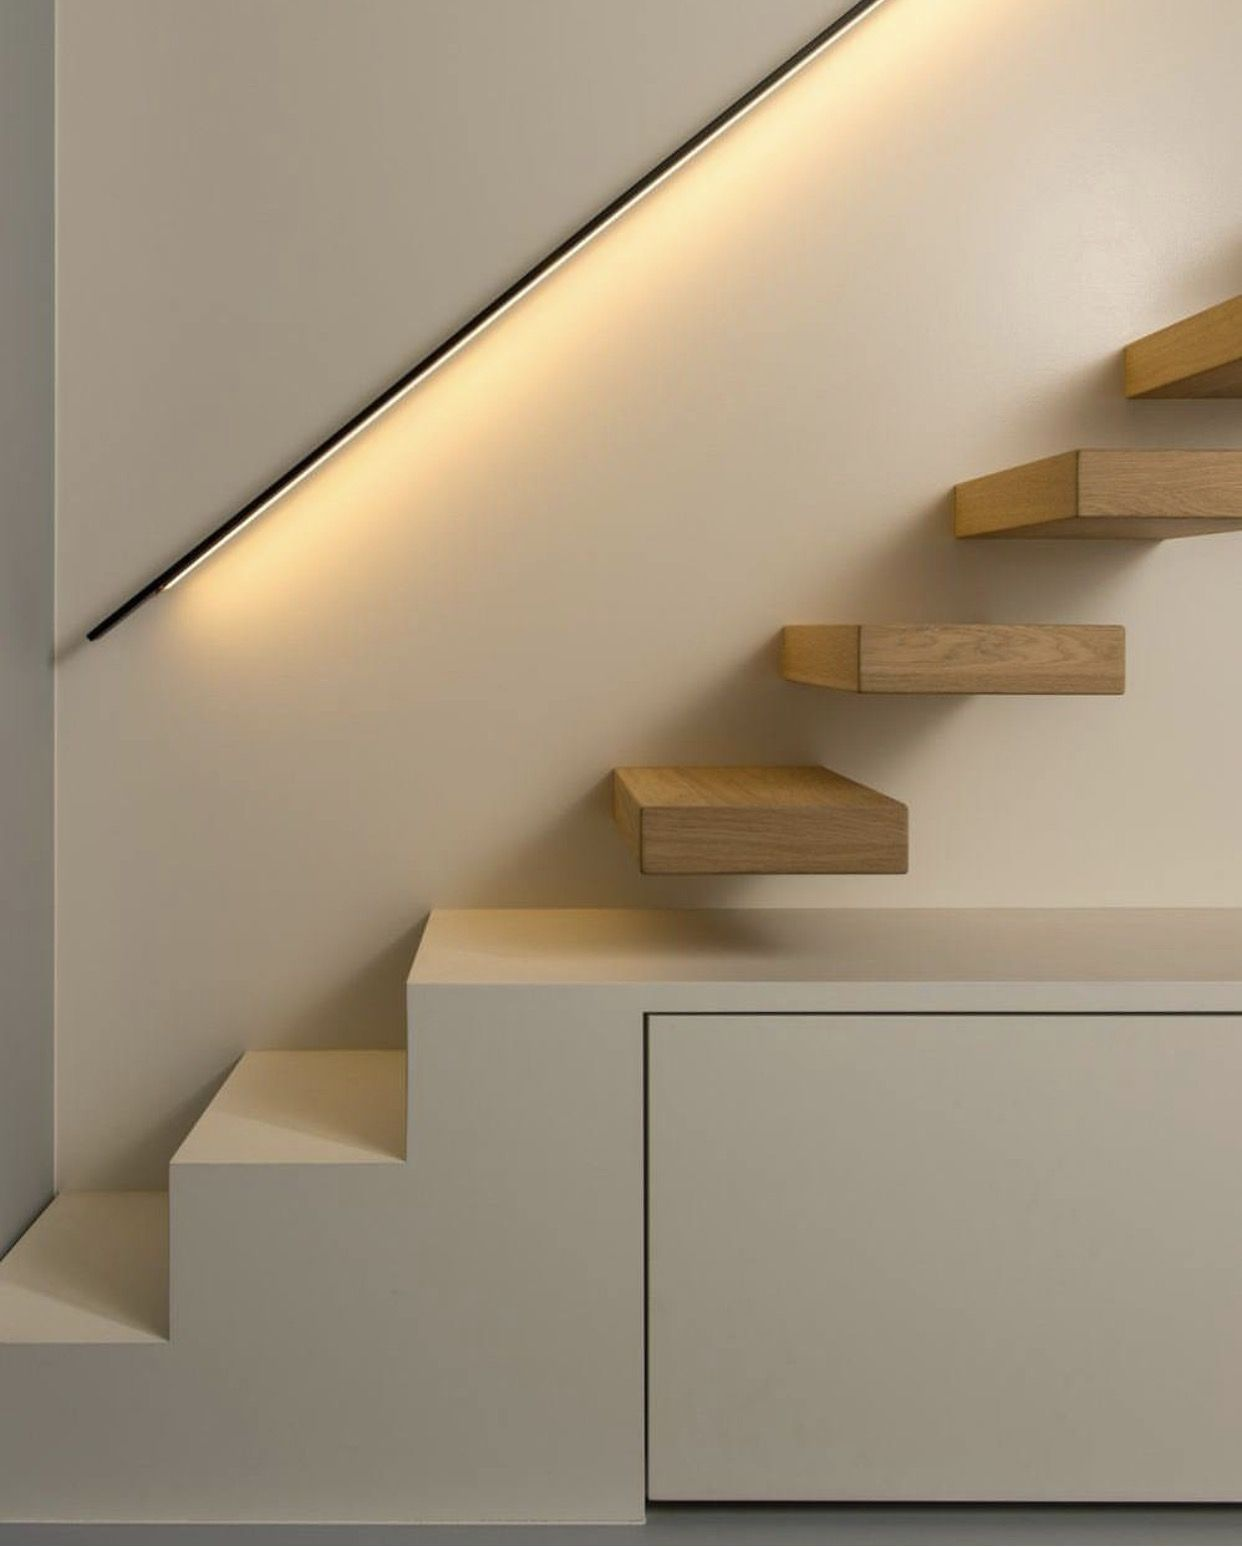 under stairs lighting. LED-verlichting \u2013 Beautiful Floating Stairs Idea With Built In Storage As Well! Under Lighting A